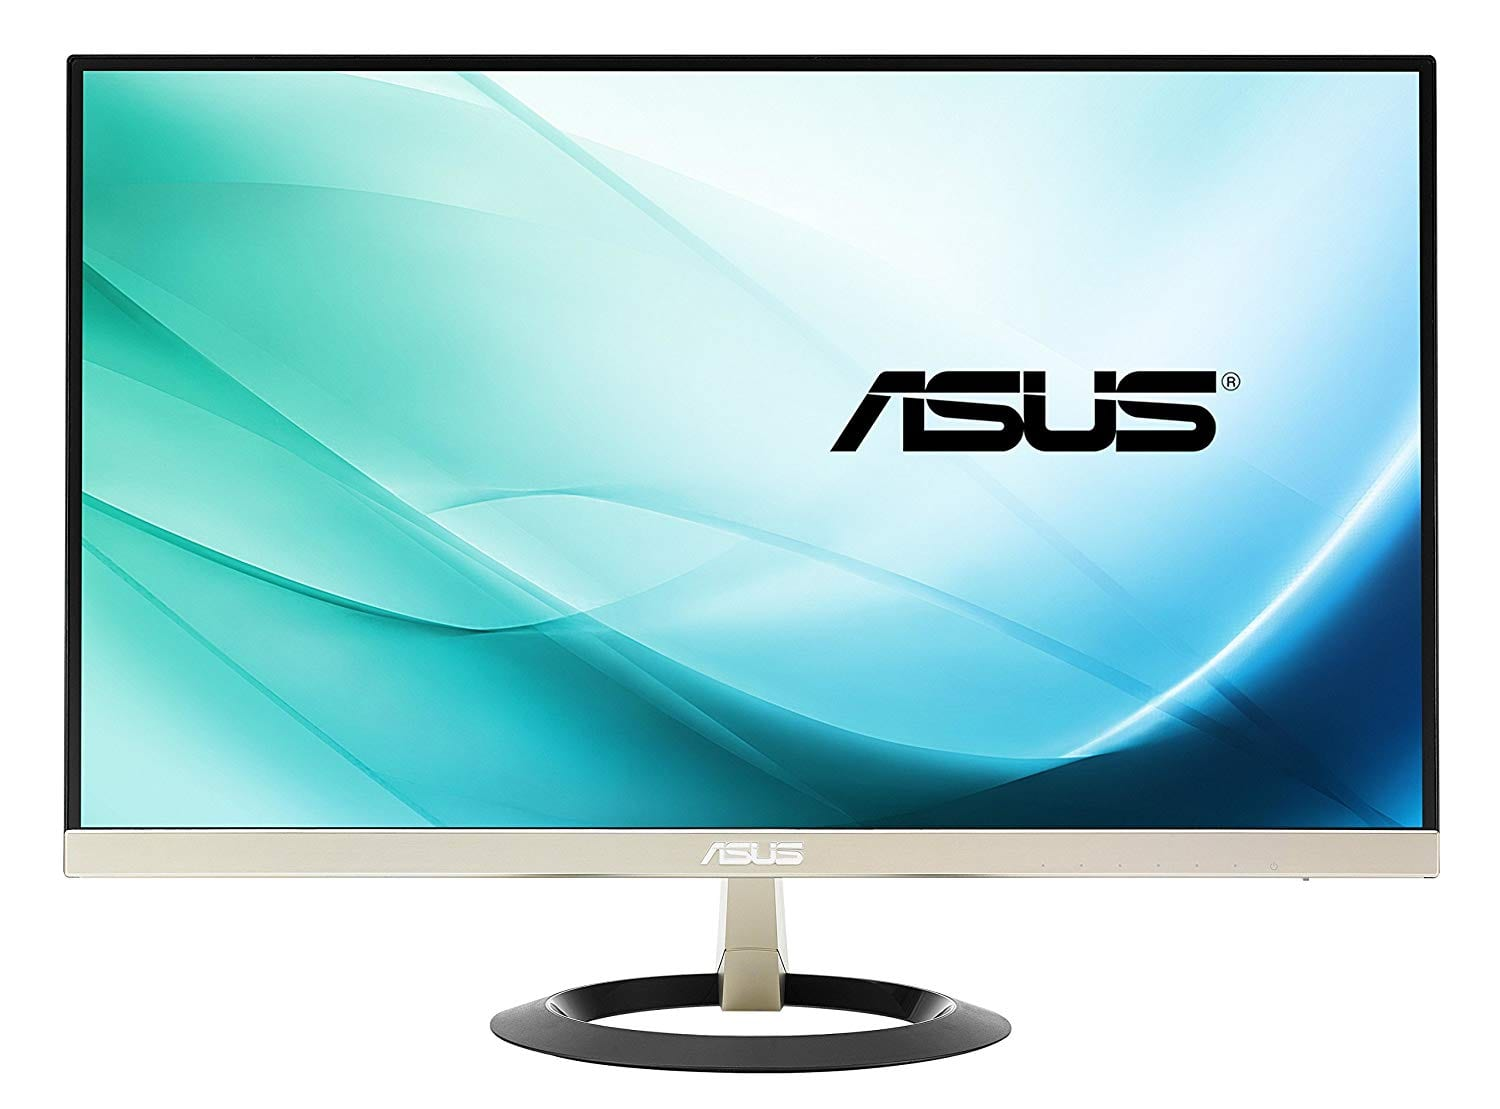 ASUS Frameless Gold 21.5 Monitor